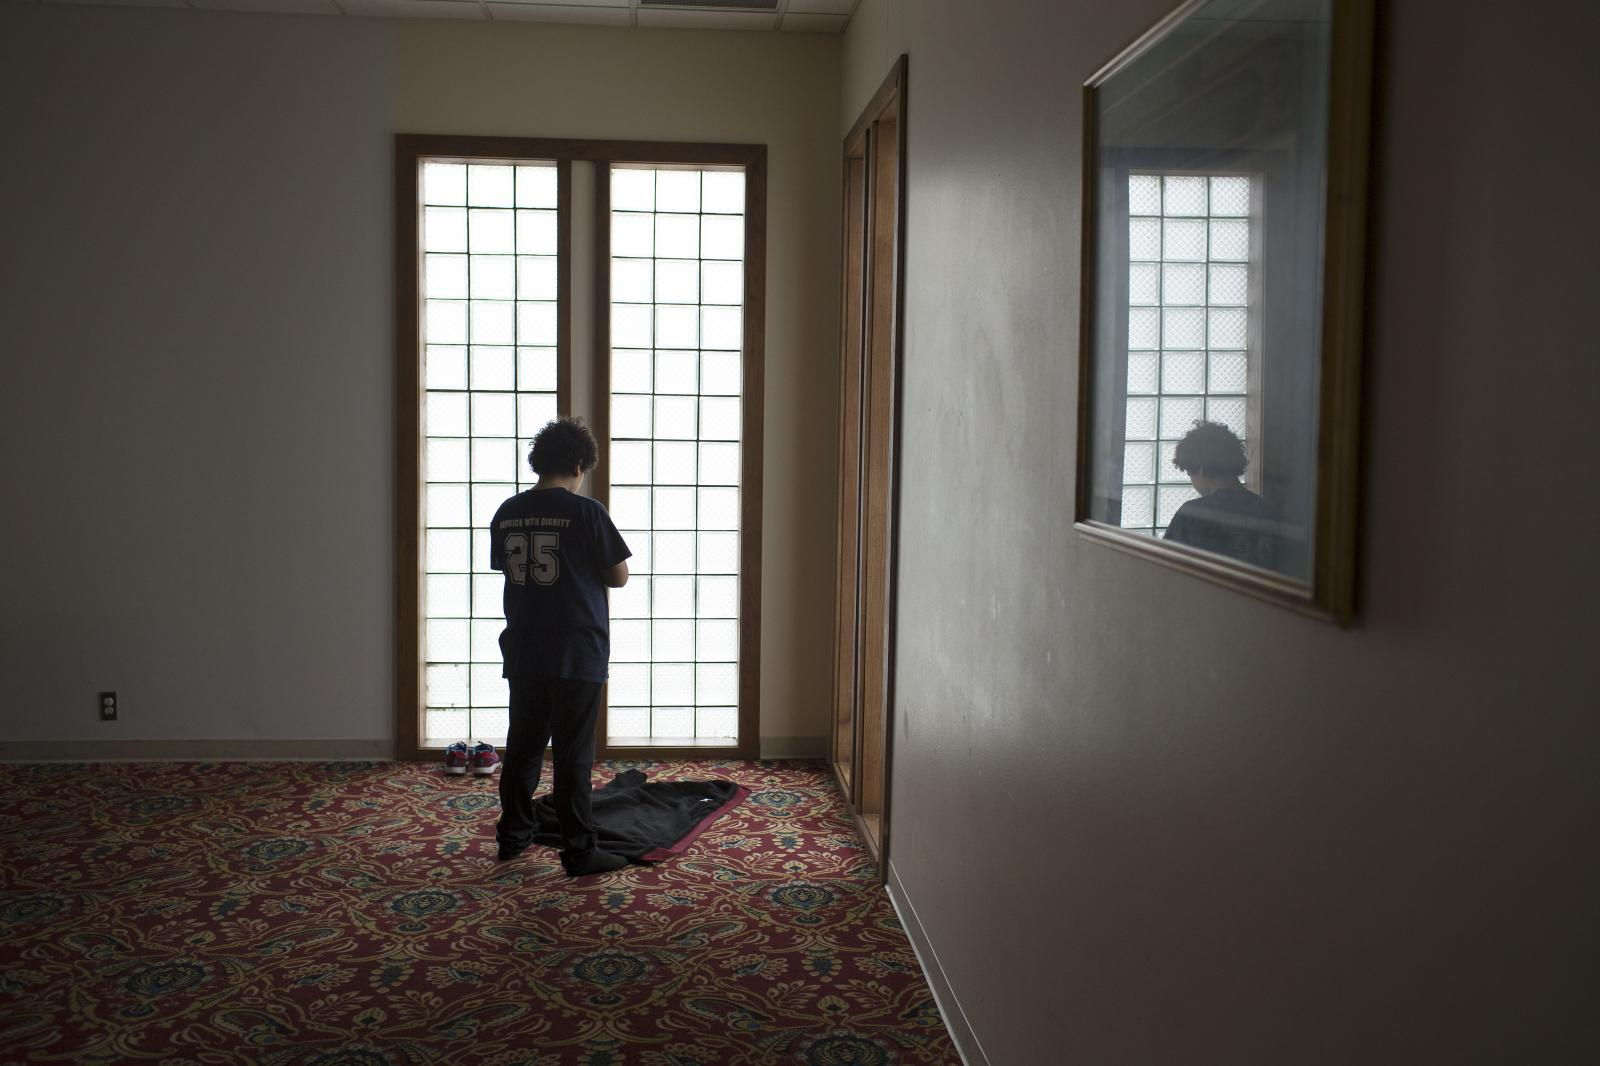 12-year-old Baraa Sadok of Cedar Rapids prays in a separate room during Friday prayers at the Islamic Center of Cedar Rapids in Cedar Rapids, Iowa on Friday, January 20, 2017. KC McGinnis for Rolling Stone